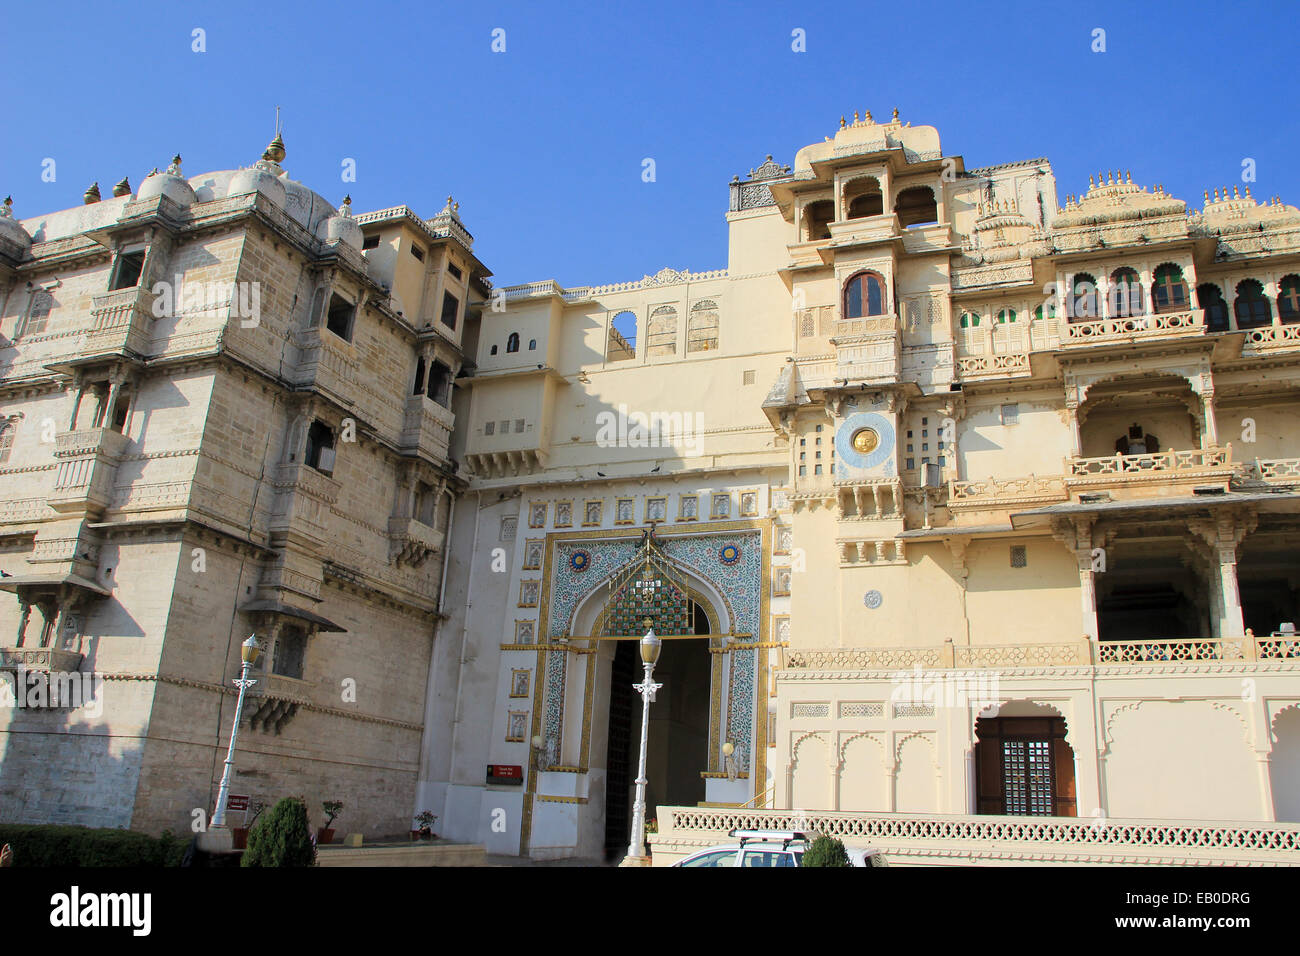 Entrance and facade of magnificent City Palace, Udaipur, Rajasthan, India, Asia - Stock Image